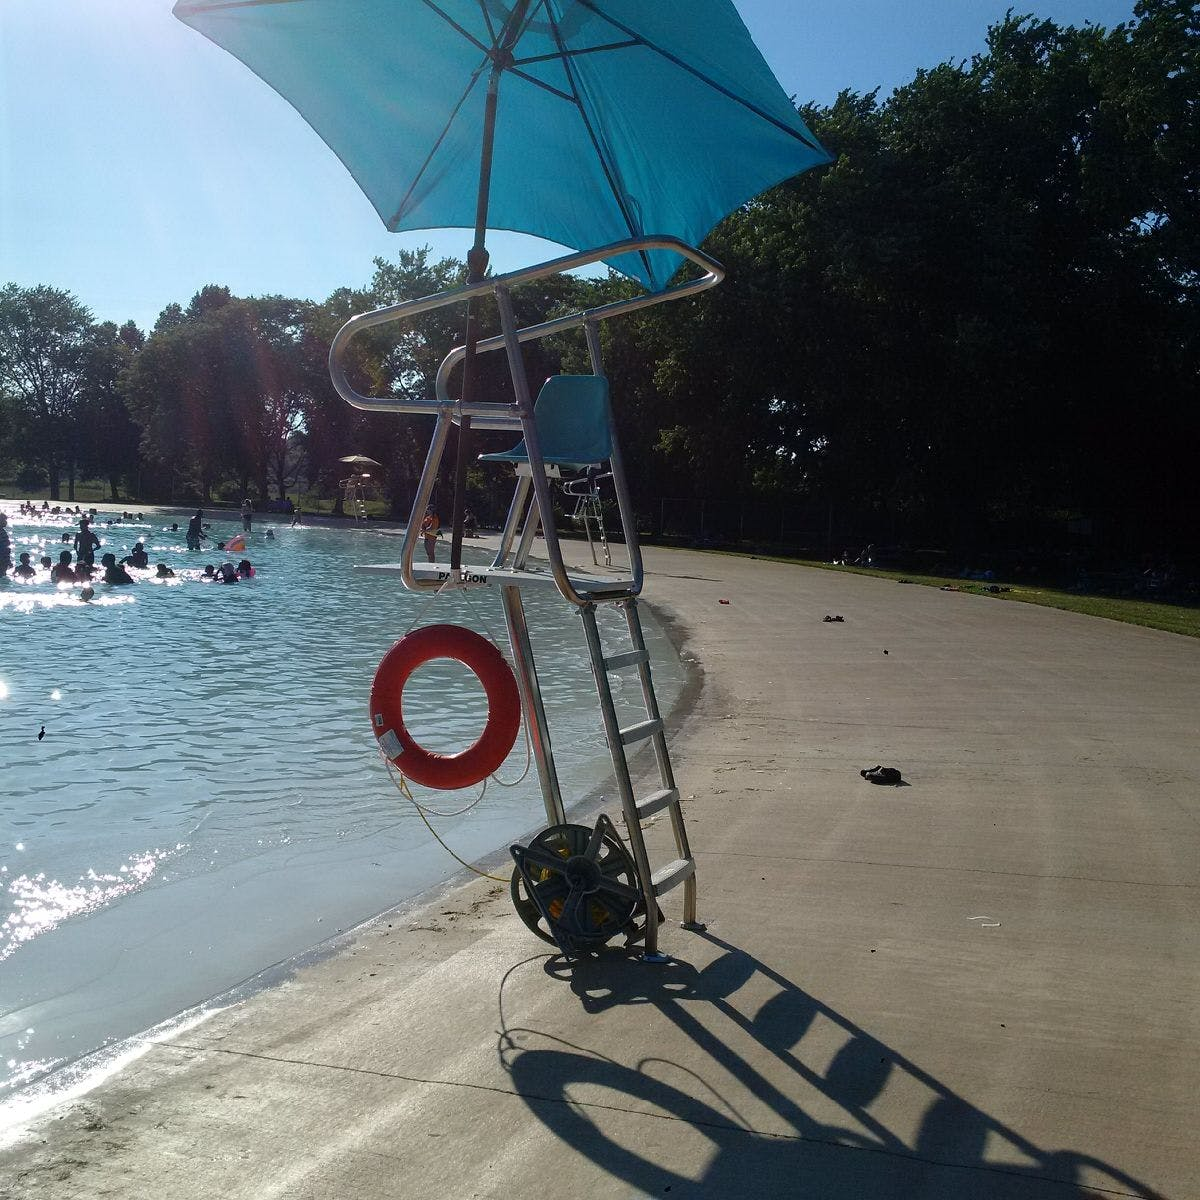 Lifeguard station beside the pool